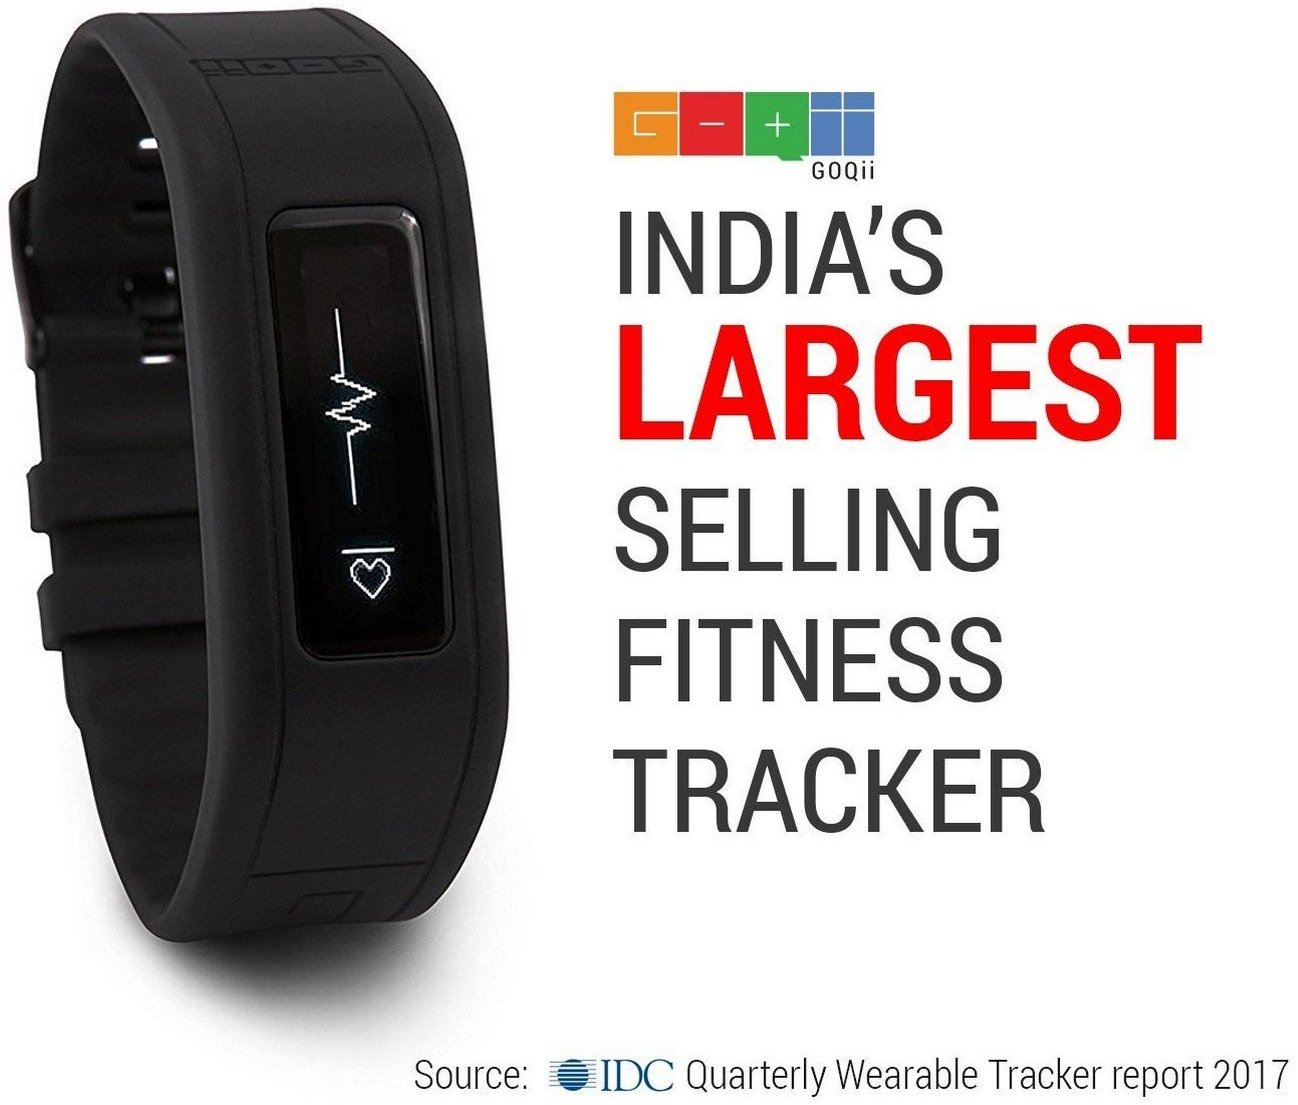 GOQii Fitness Tracker with Personal Coaching